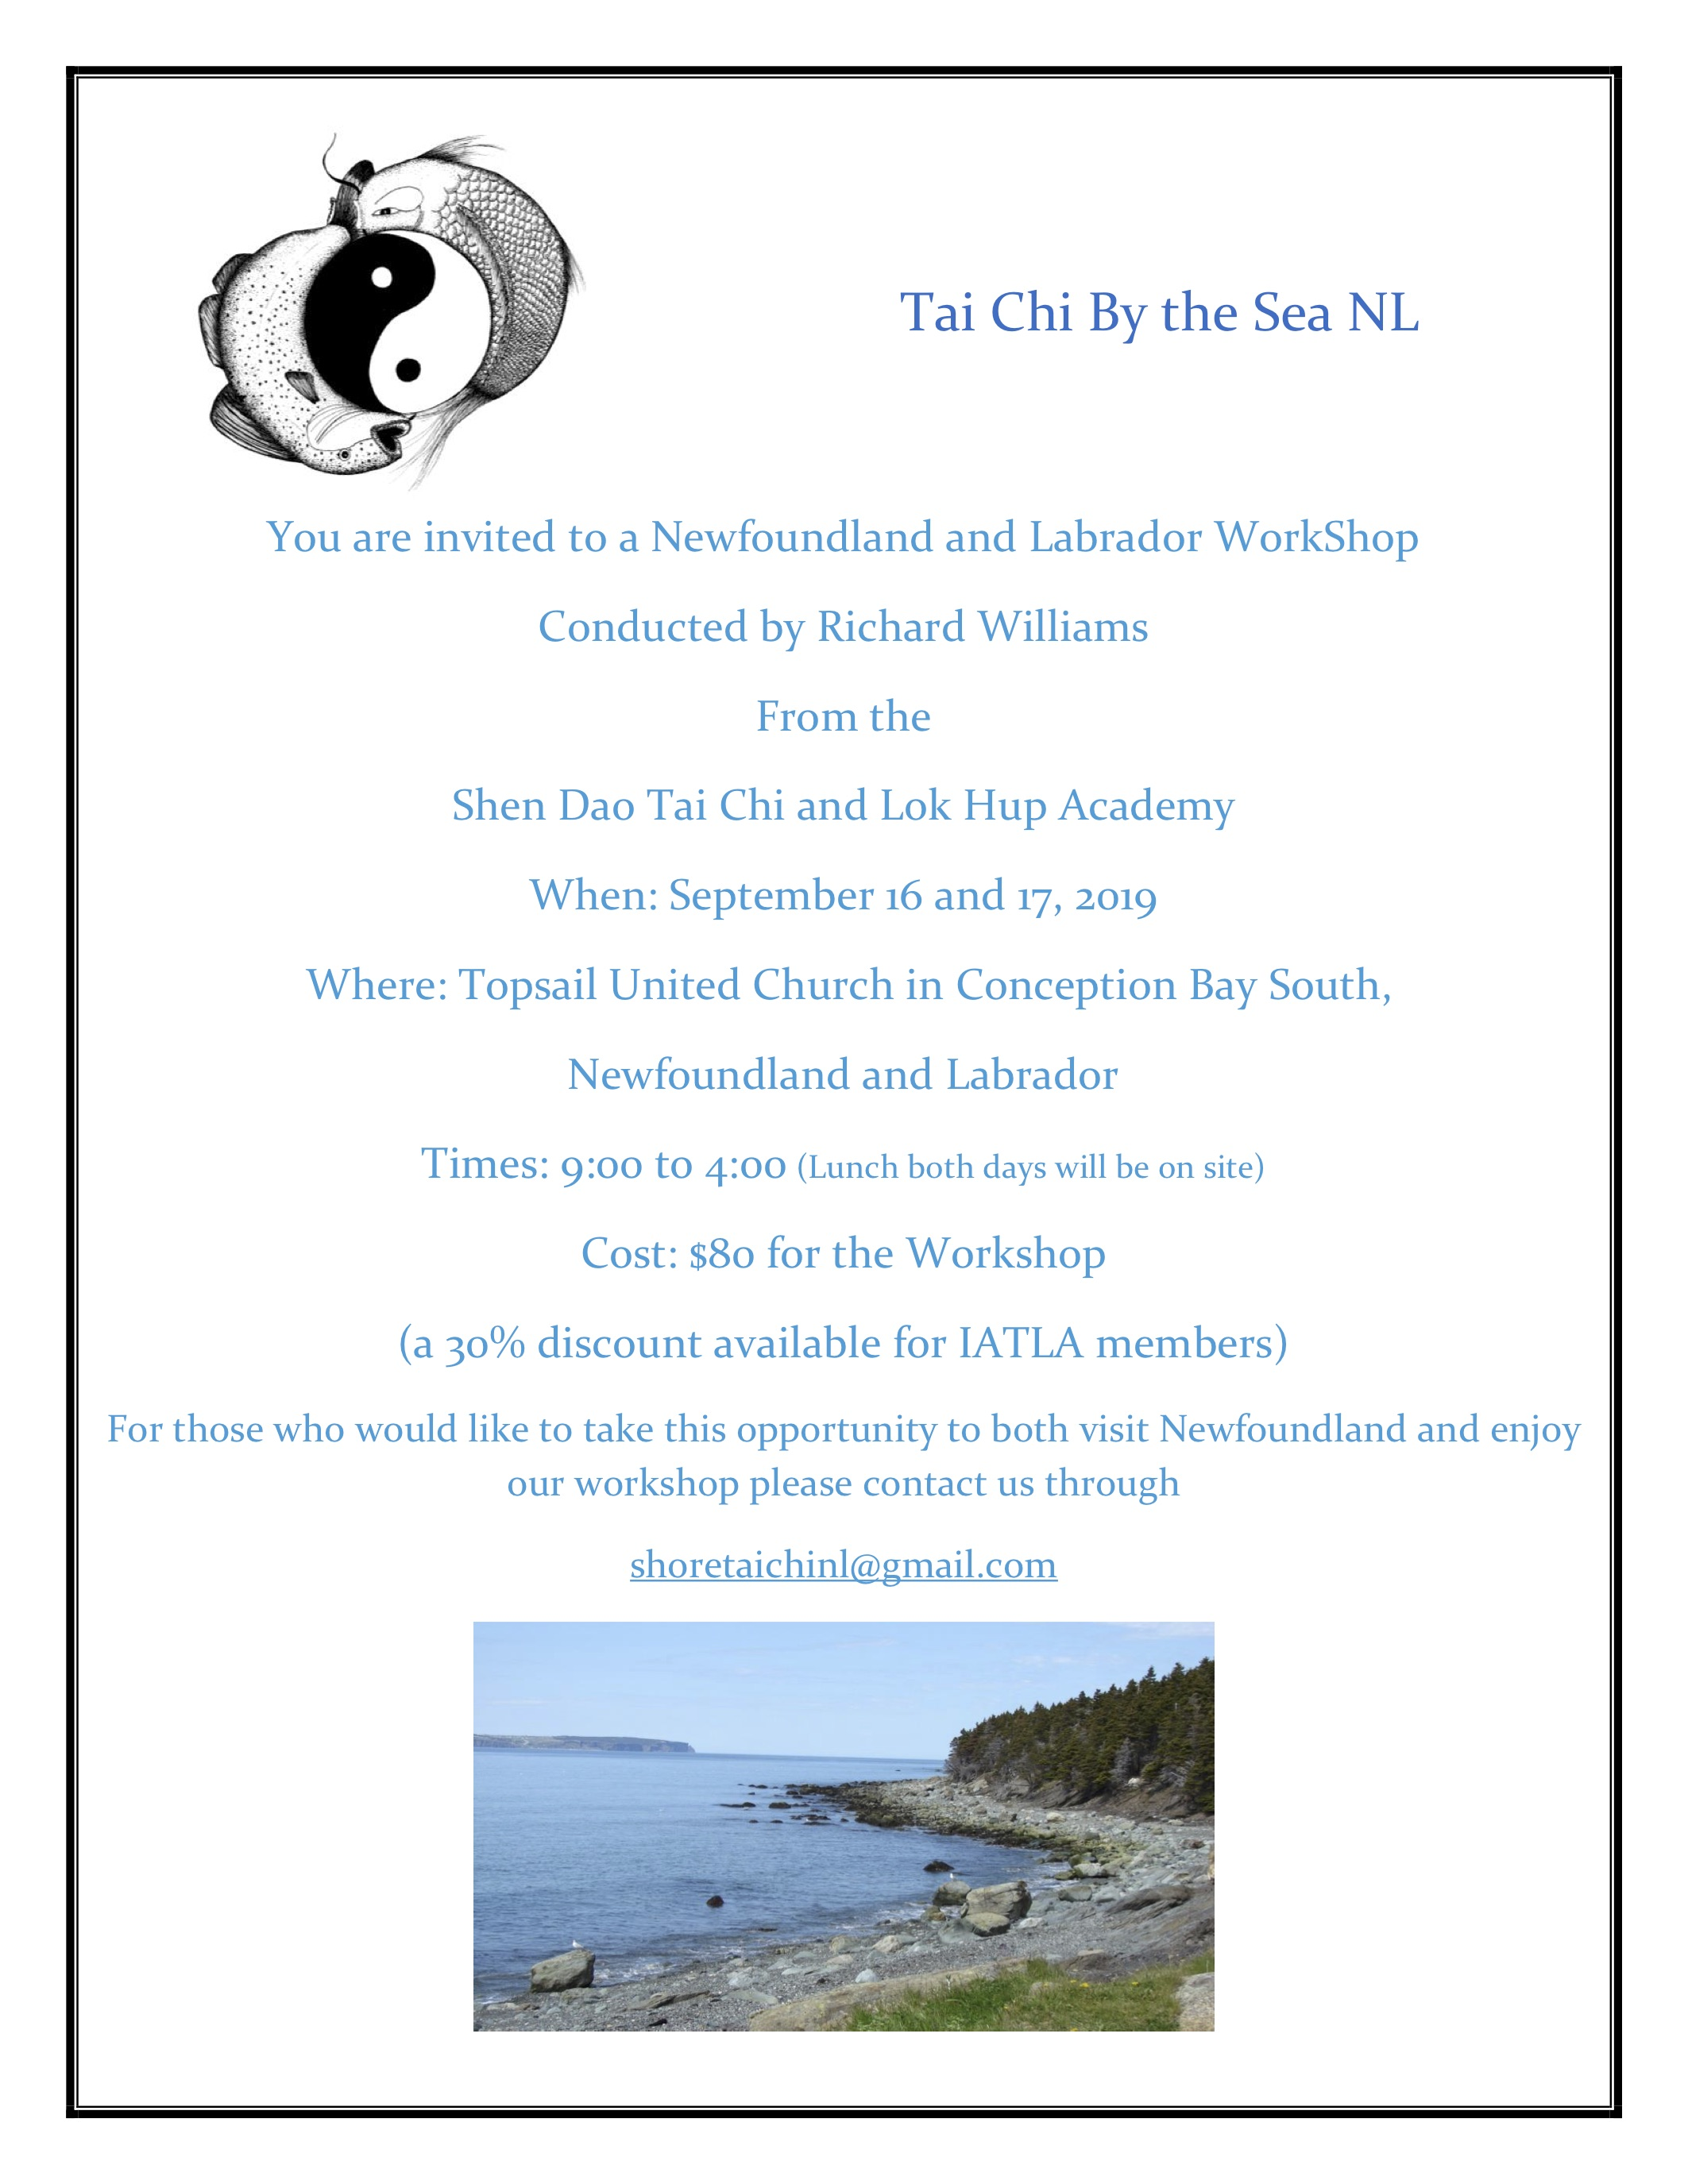 Tai Chi By the Sea NL Workshop 2019.jpg